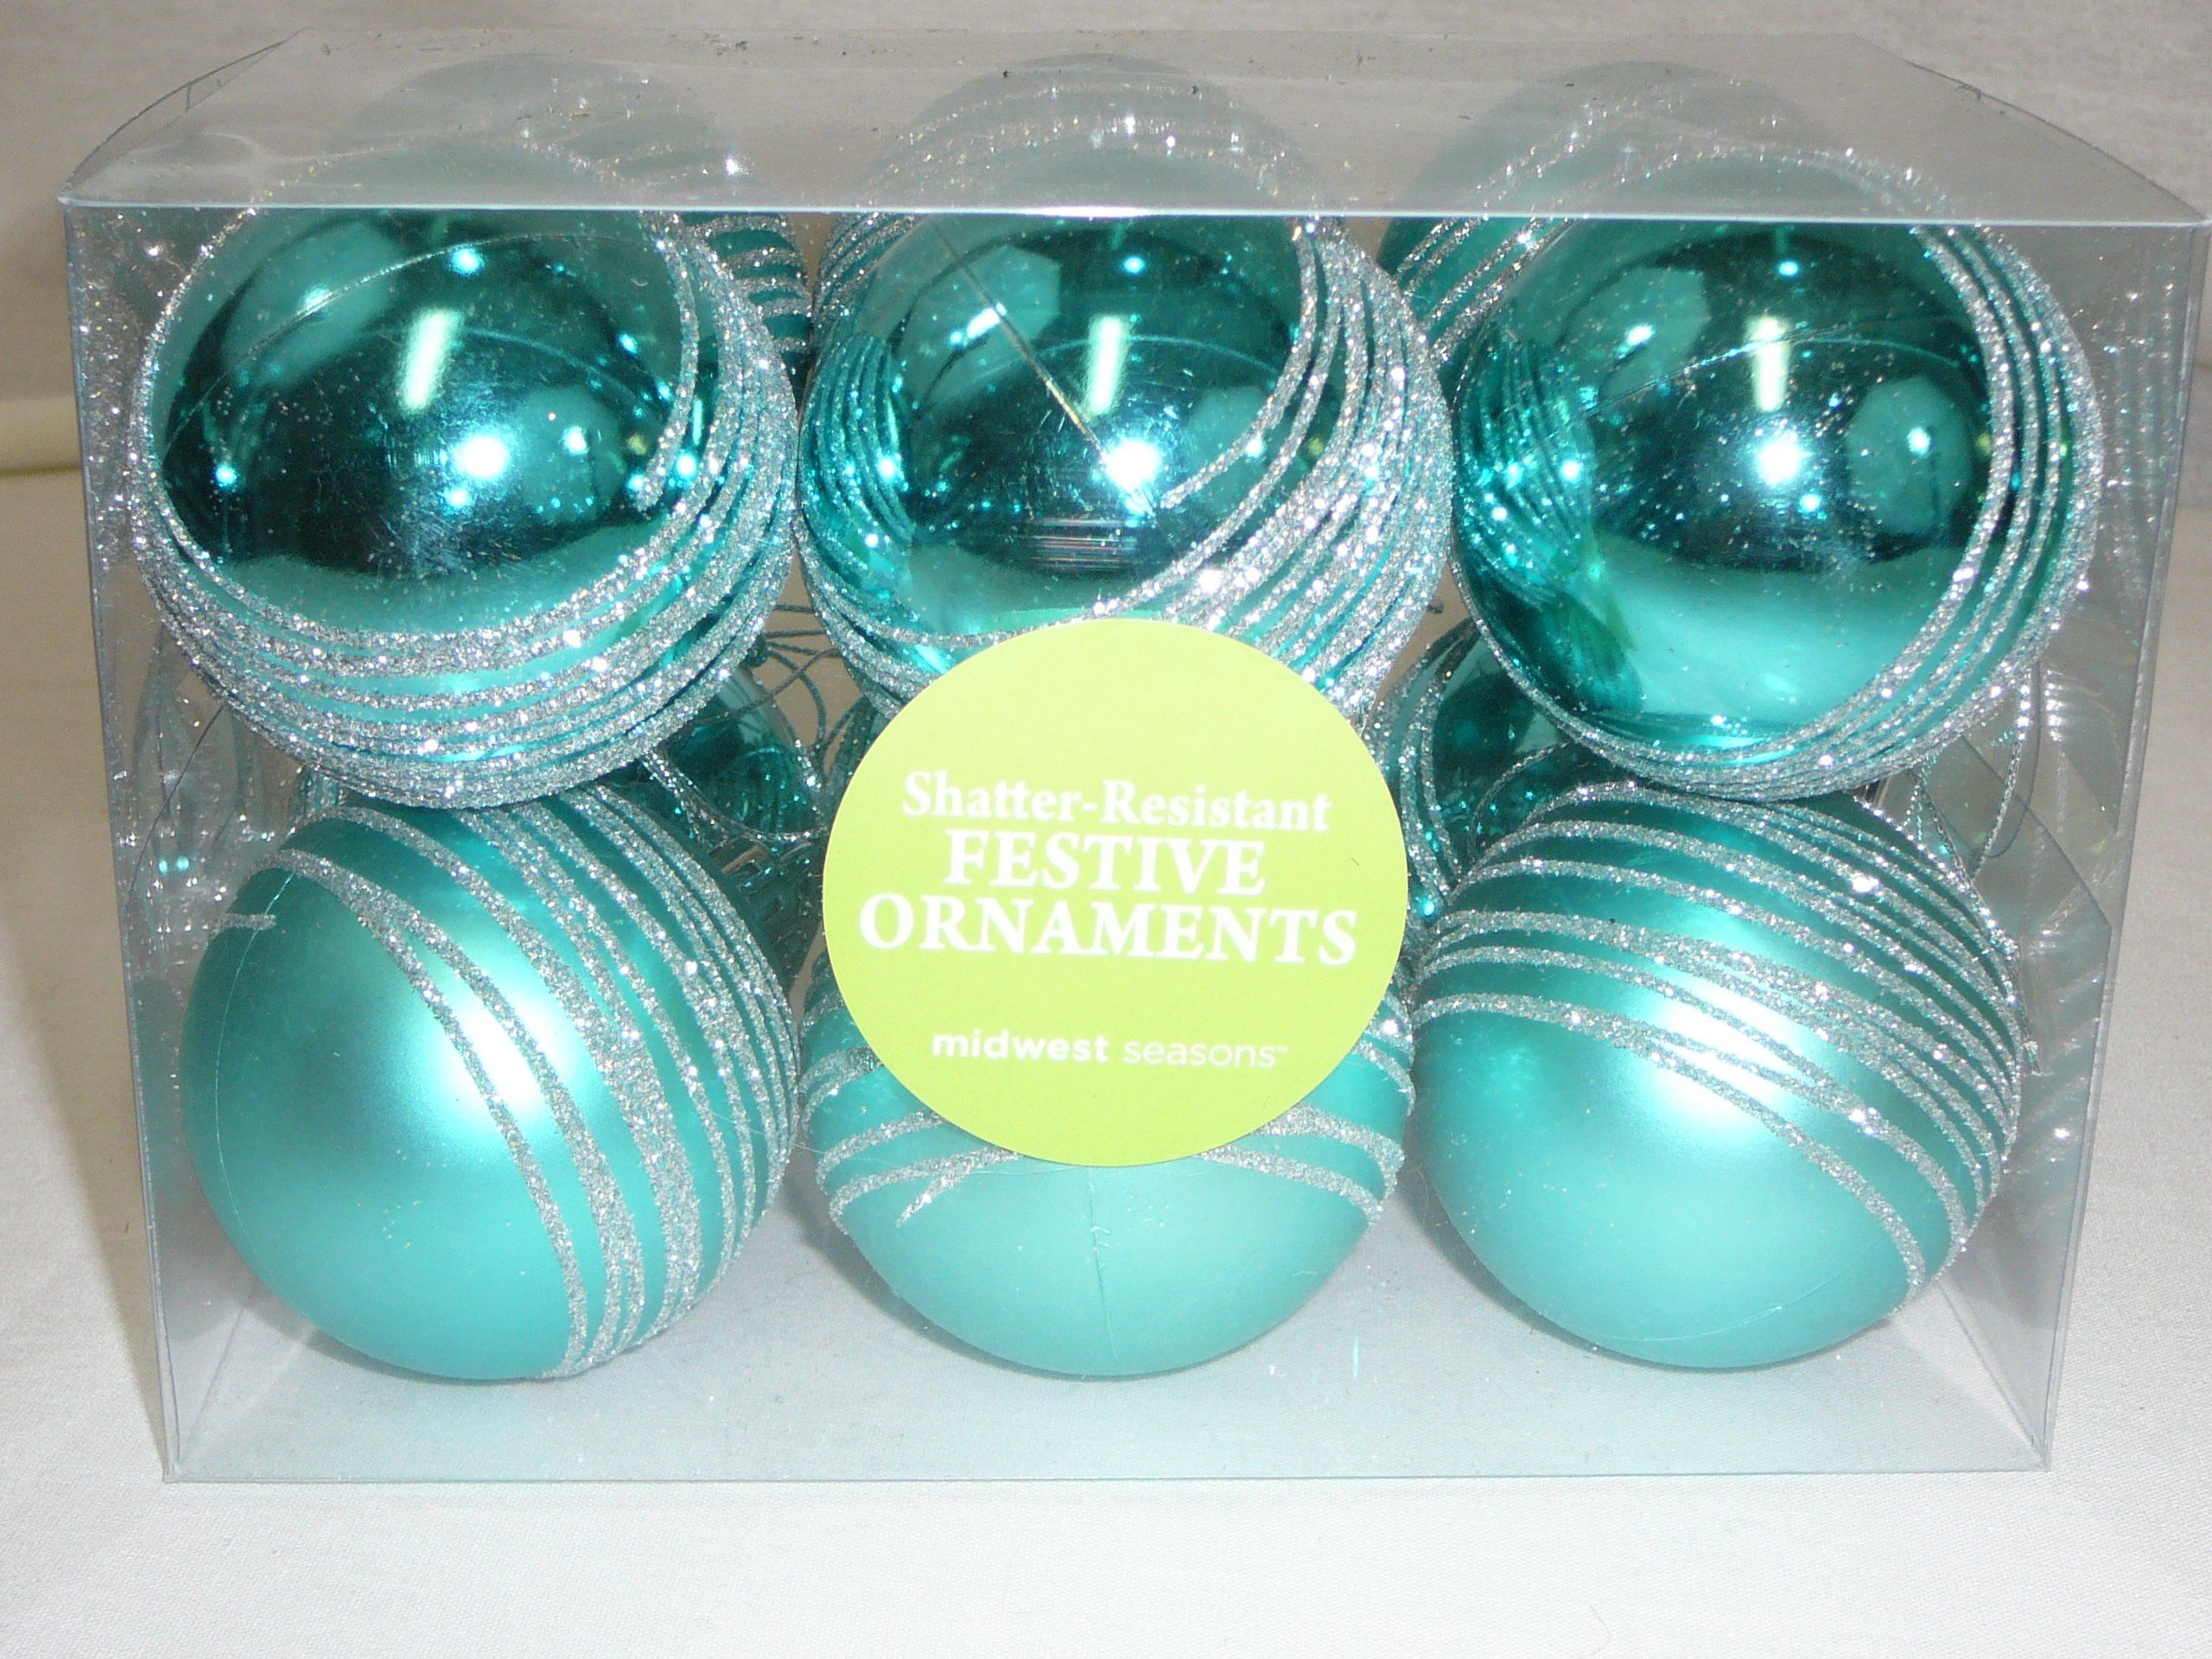 "Amazon.com - Set of (12) Shatterproof Christmas Ornament Balls, Turquoise w/Silver Glitter, 2"" -"